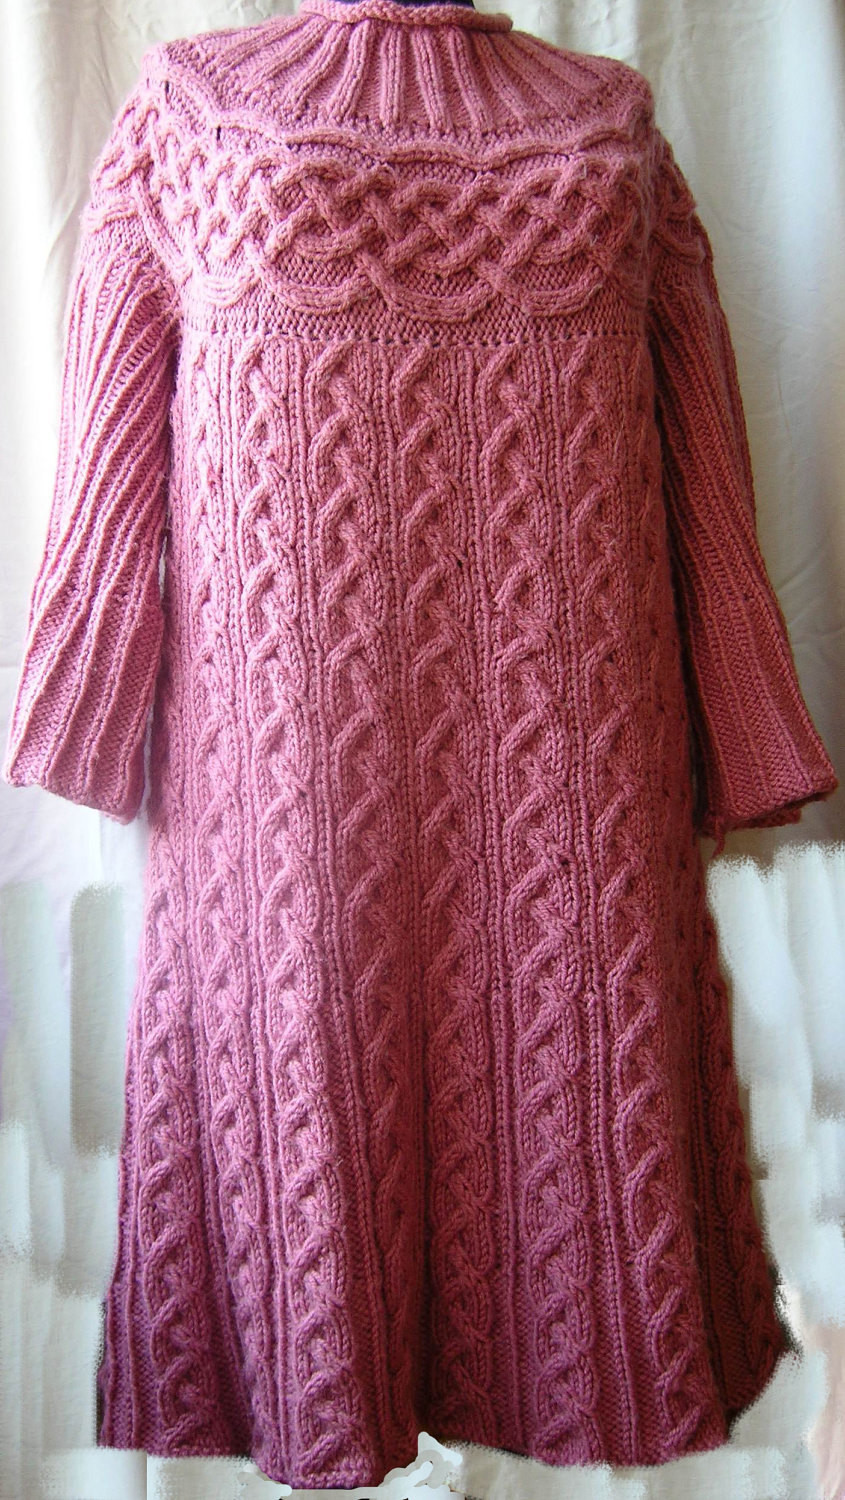 Crochet Cable Pattern Luxury Cable Tunic Pattern Knitted Tunic Dress Sweater Jumper Of Perfect 40 Ideas Crochet Cable Pattern